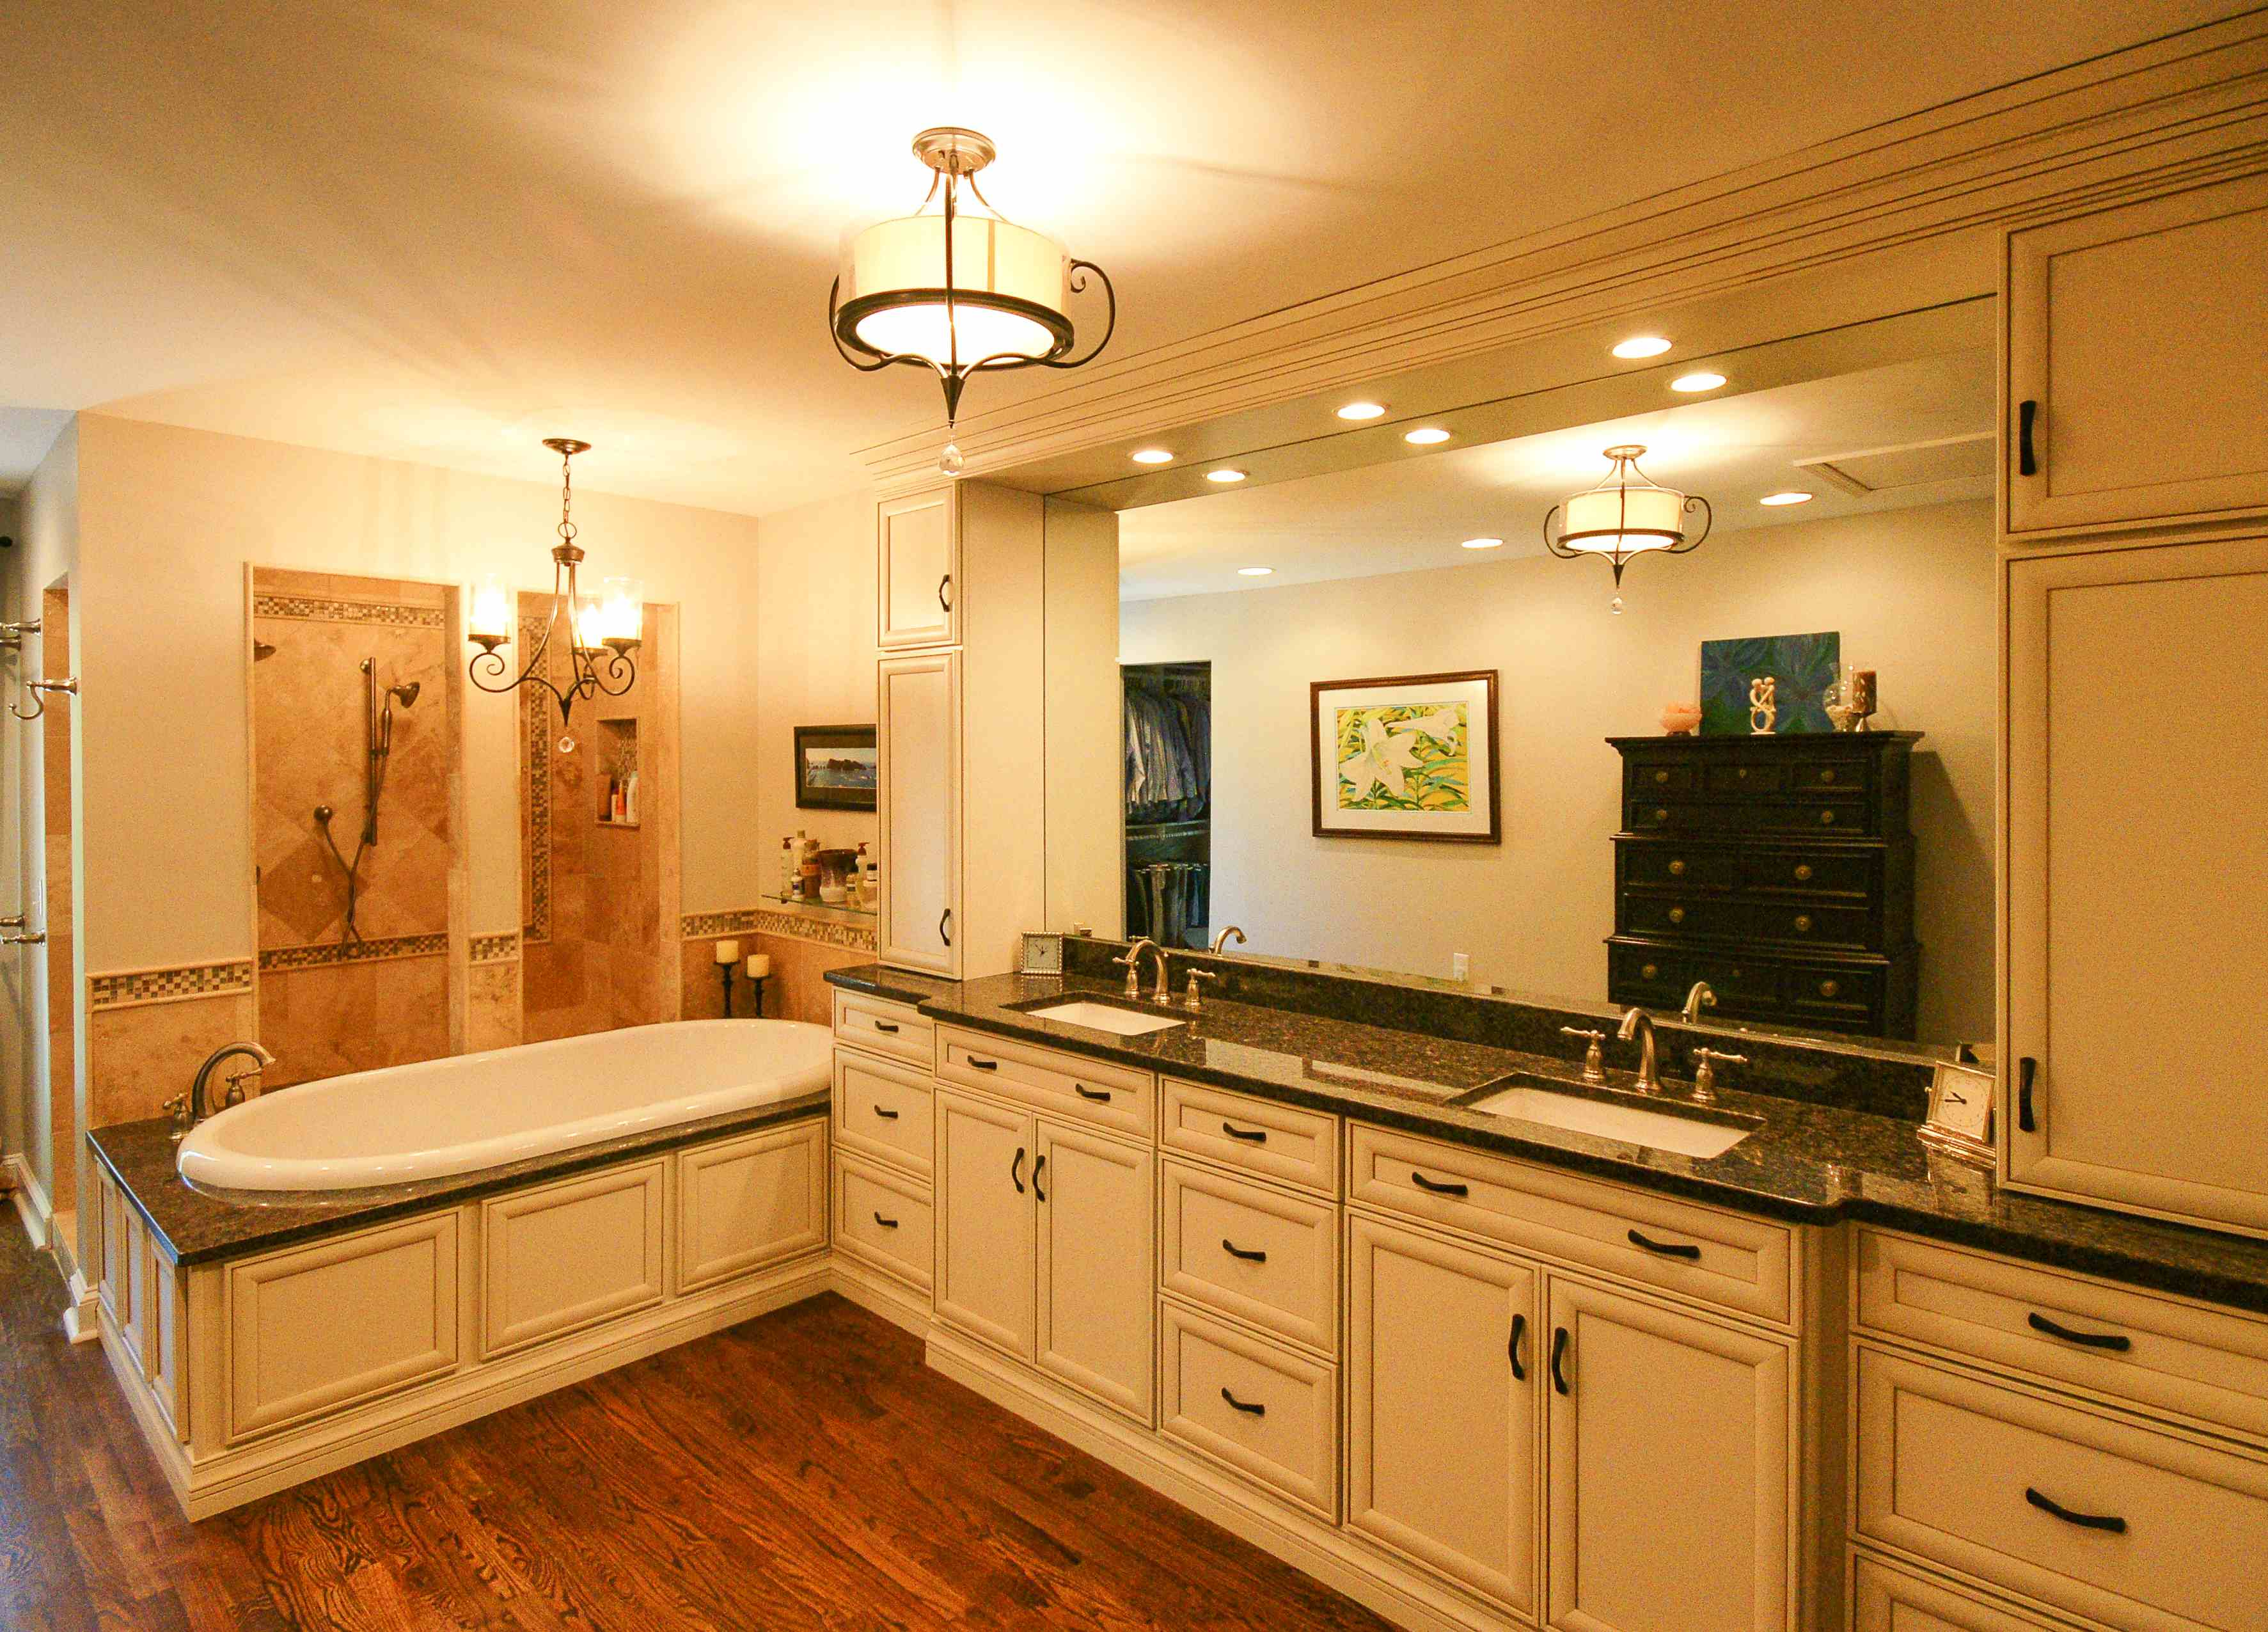 Professional House Remodeling Athens JOMA Construction Athens GA - Bathroom remodel athens ga